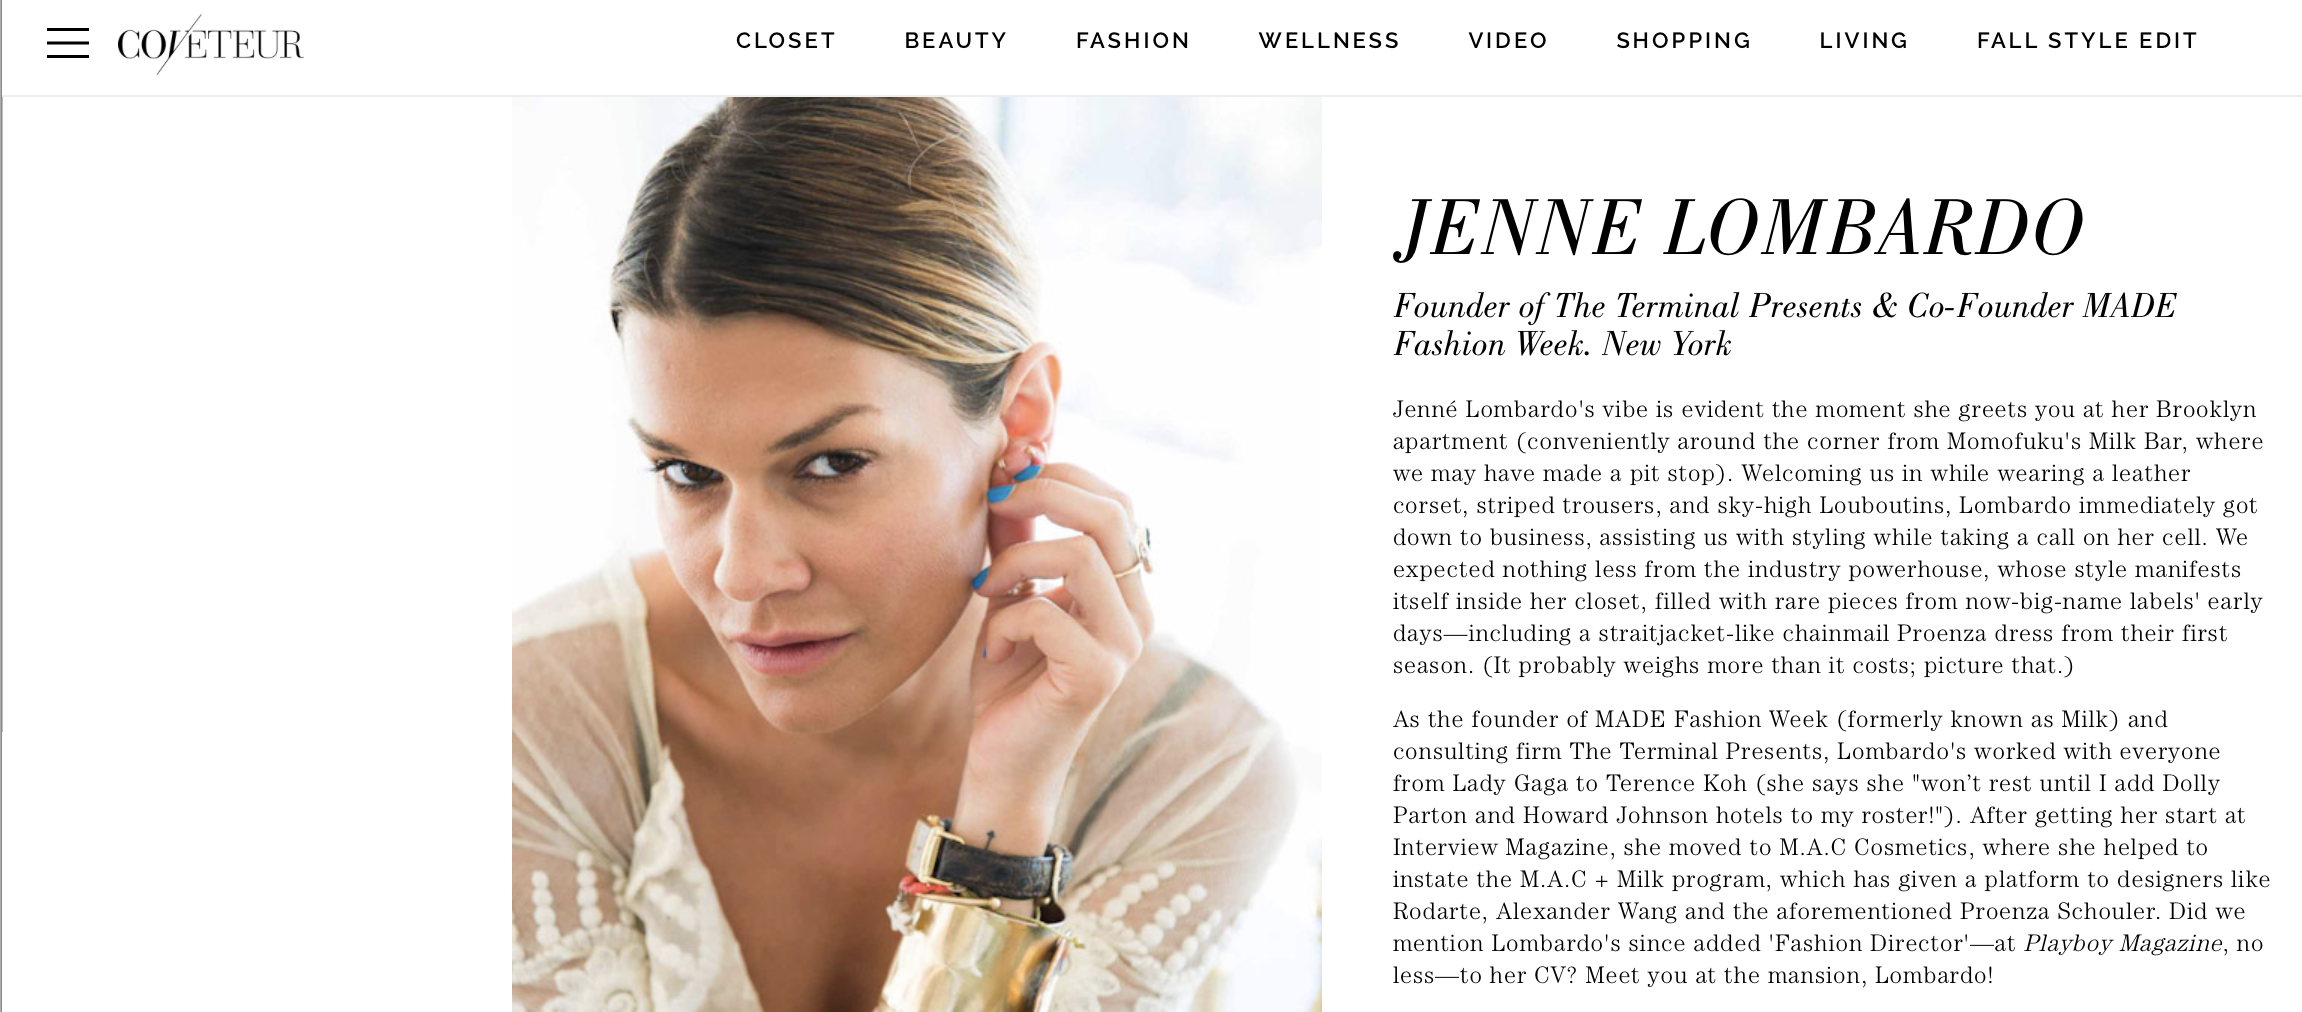 The Coveteur - Jenne Lombardo - The Terminal Presents MADE Fashion Week